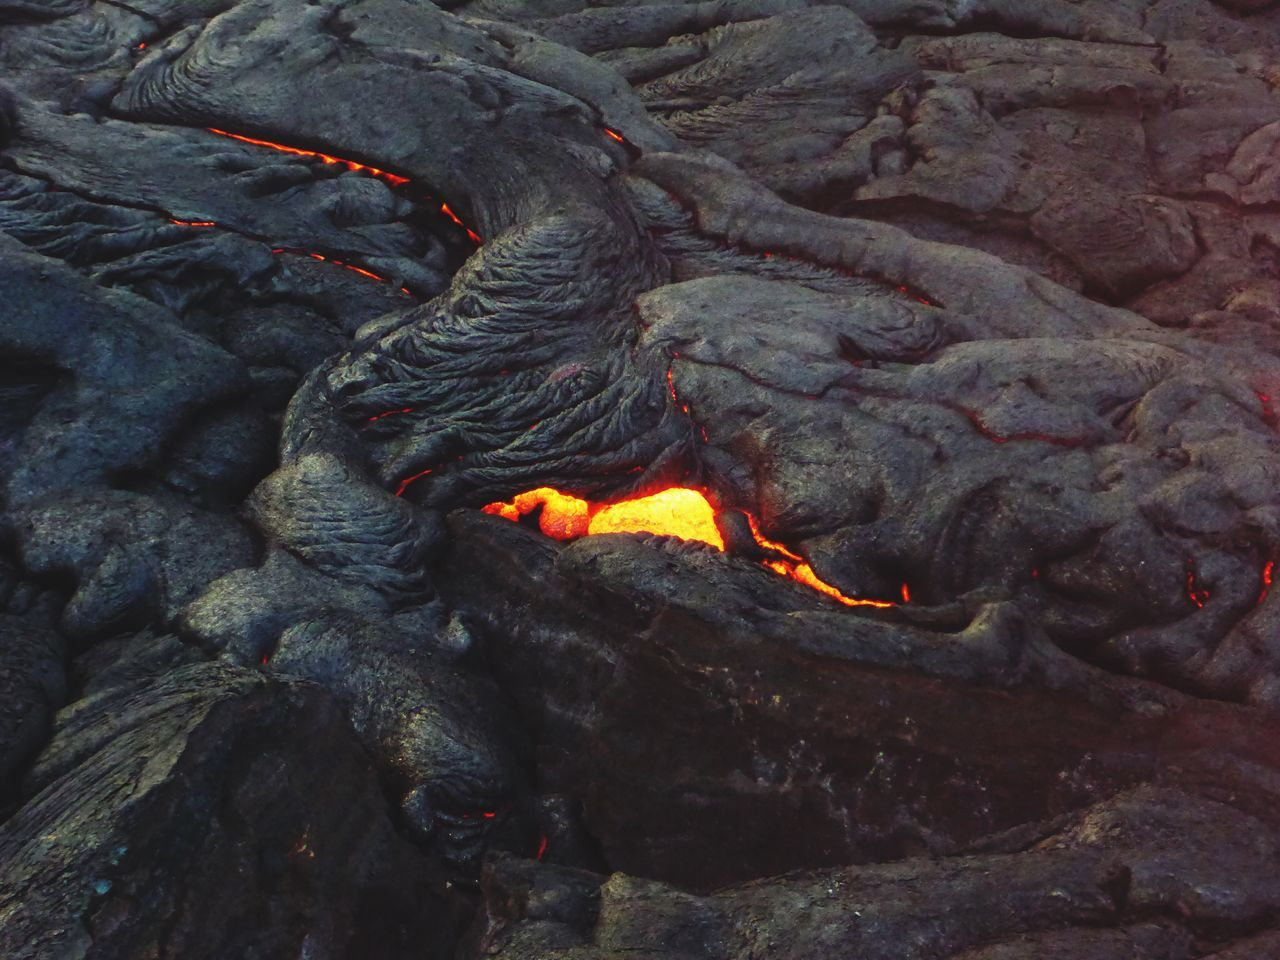 lava, volcano, geology, heat - temperature, no people, outdoors, nature, physical geography, volcanic crater, active volcano, volcanic landscape, erupting, night, molten, power in nature, beauty in nature, close-up